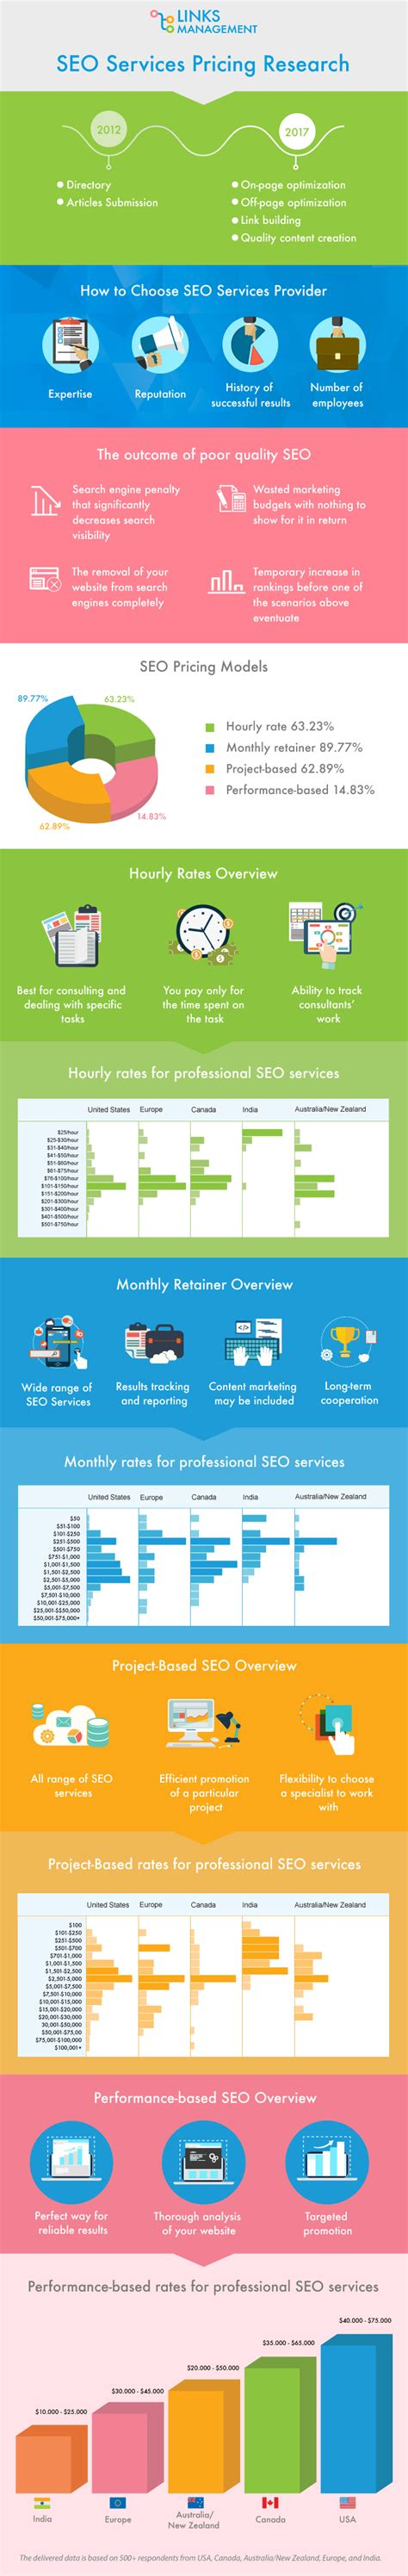 seo services pricing cost of seo services in different countries linksmanagement